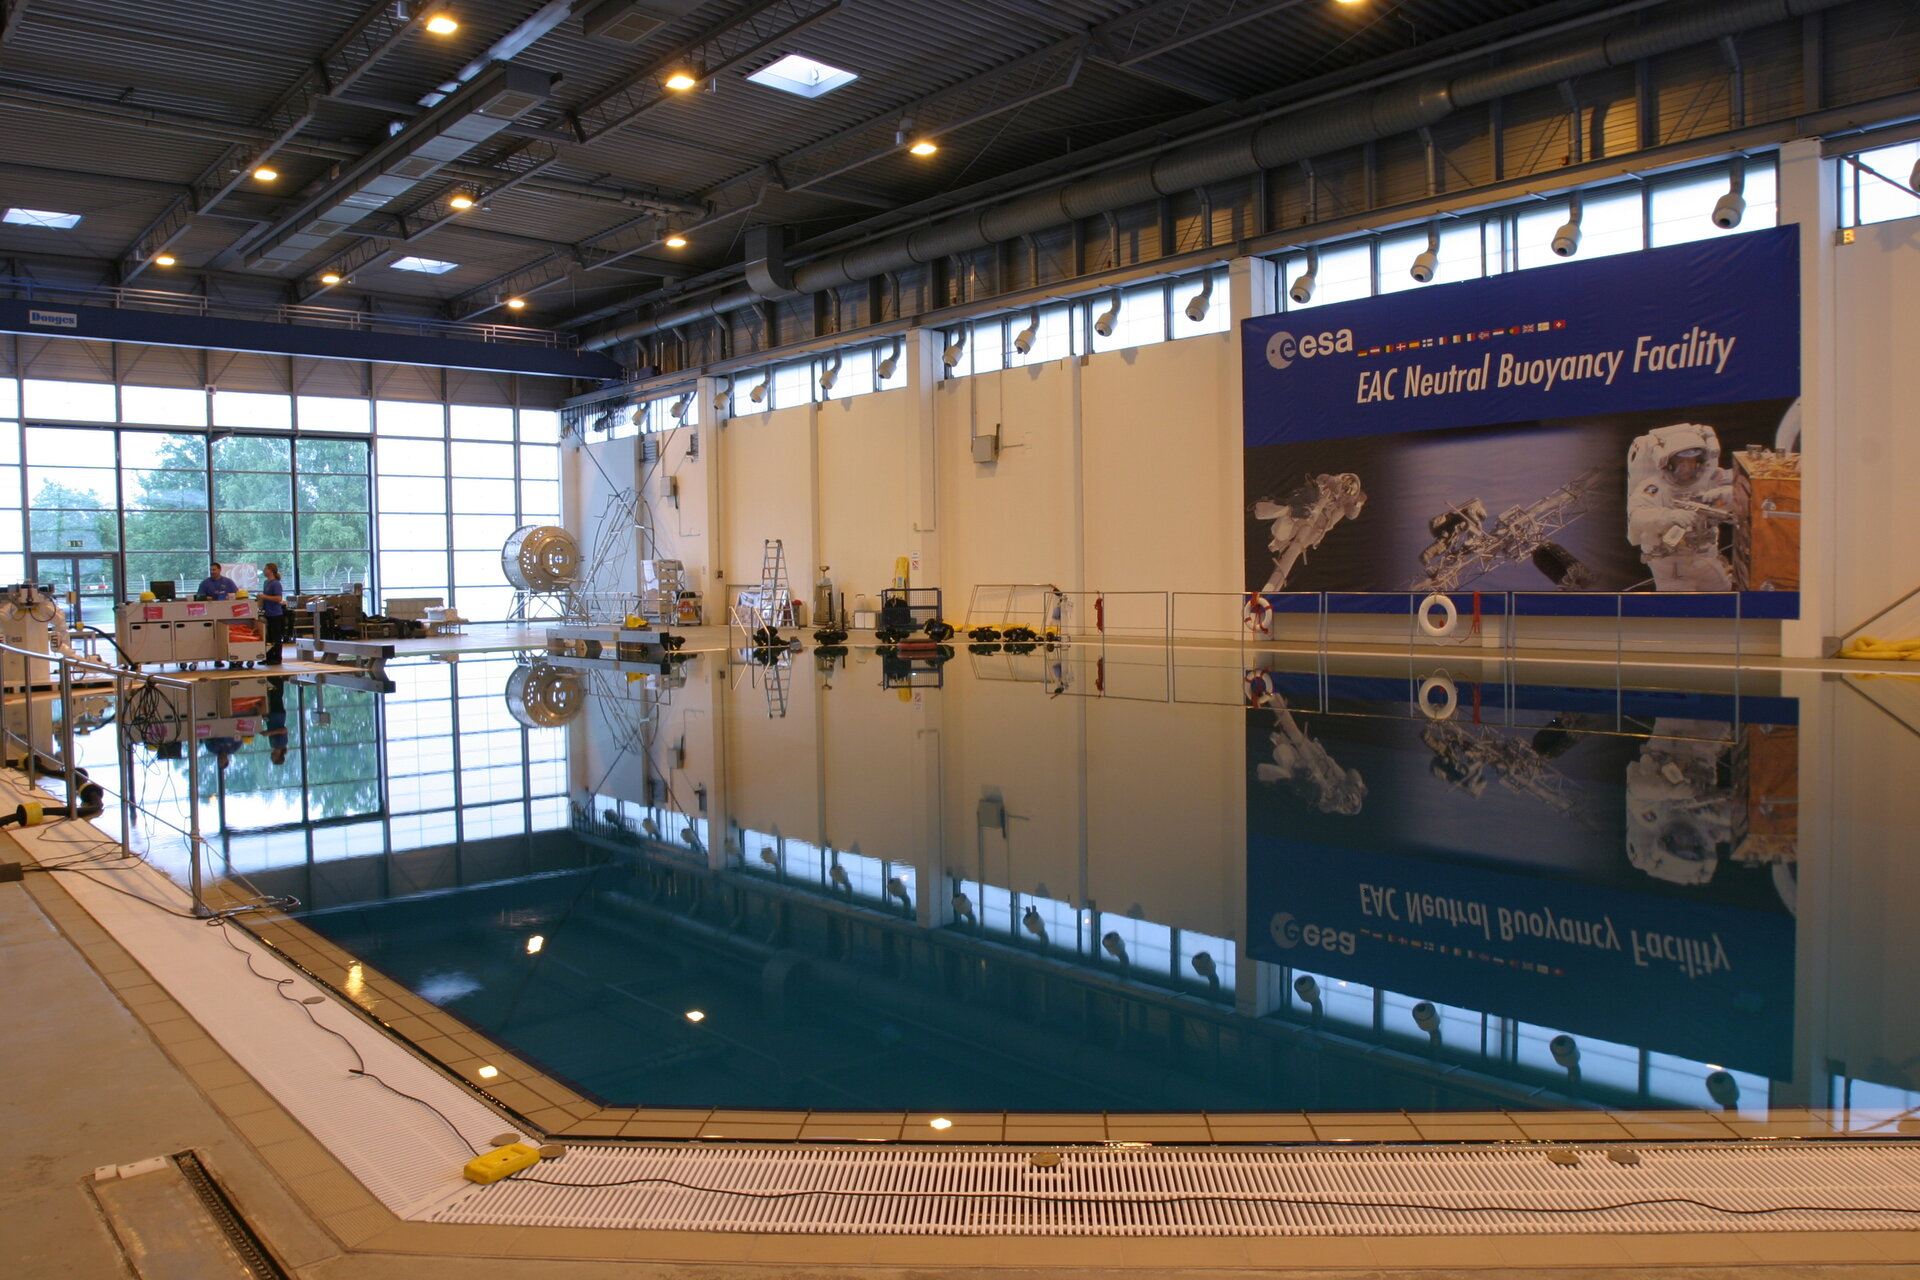 Neutral Buoyancy Facility at EAC in Cologne, Germany